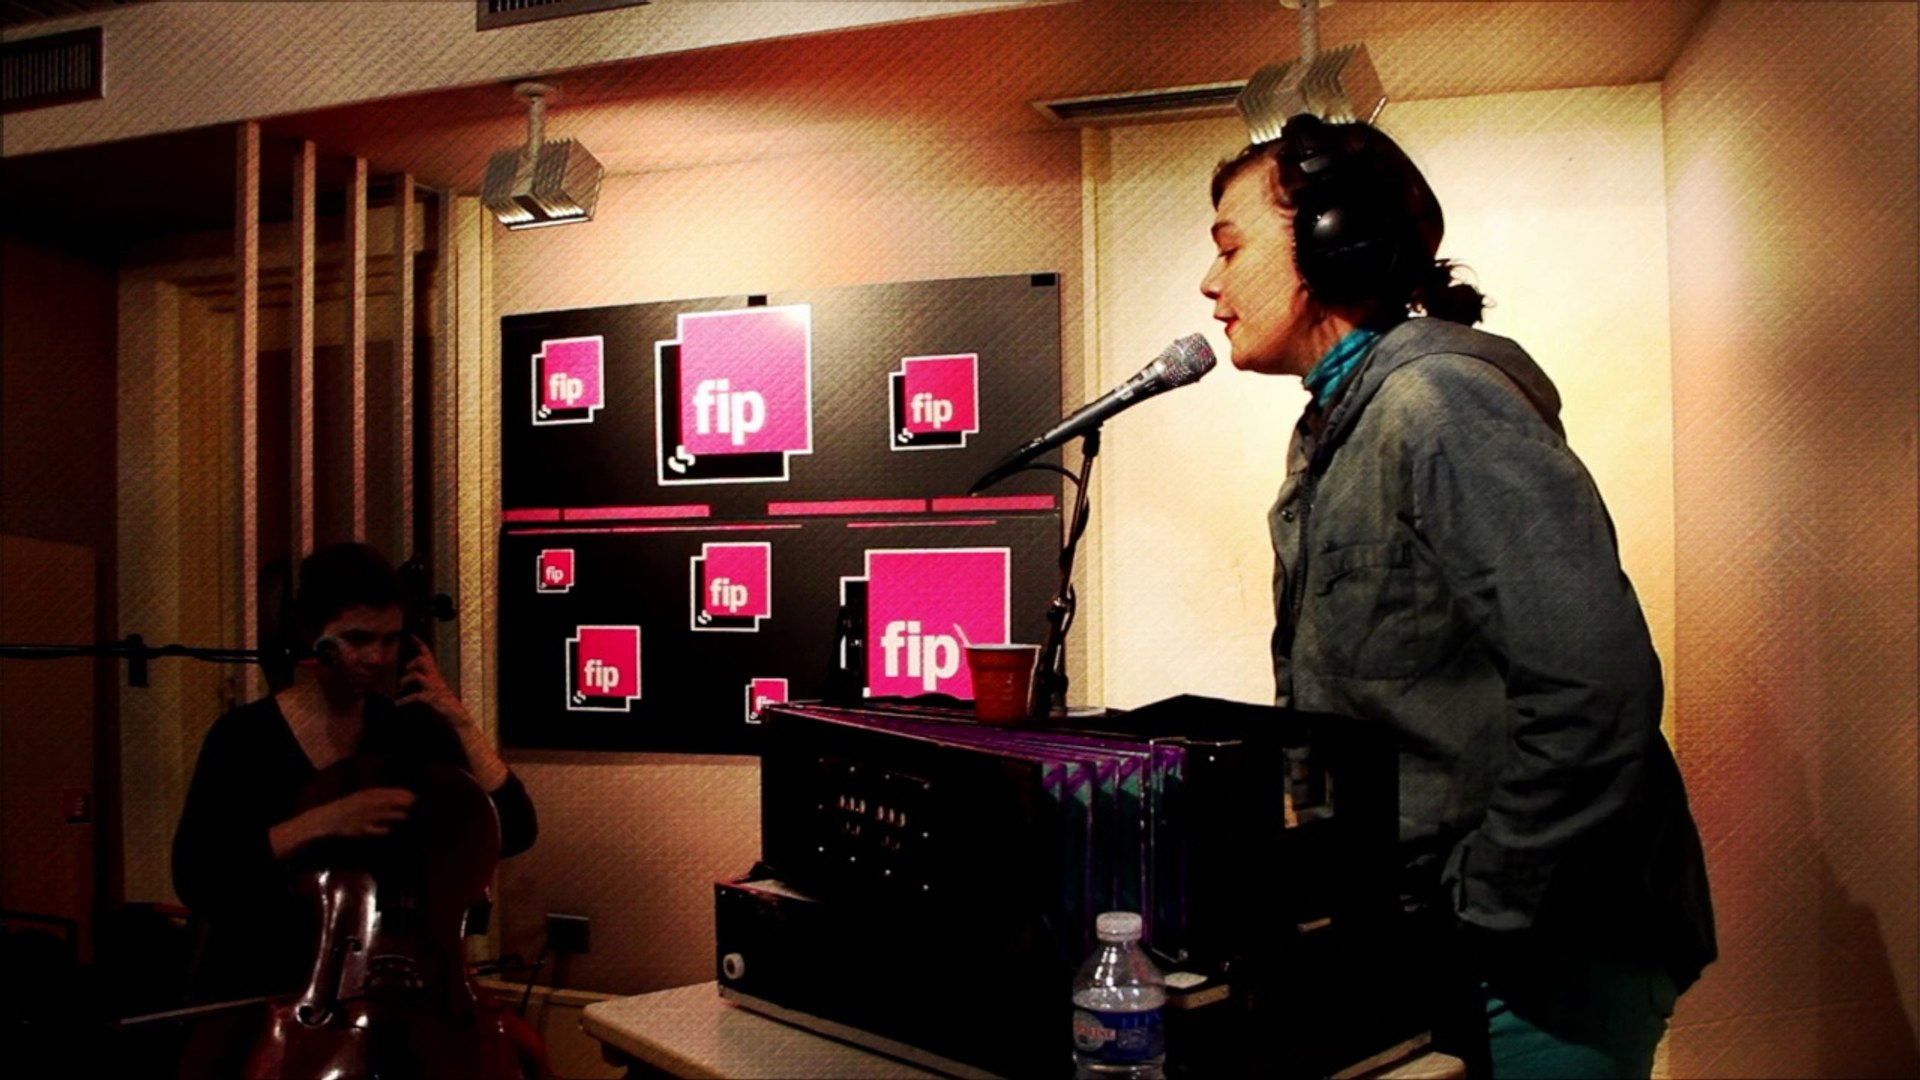 Rosemary Standley et Dom La Nena - Fip session live - 2 mai 2014